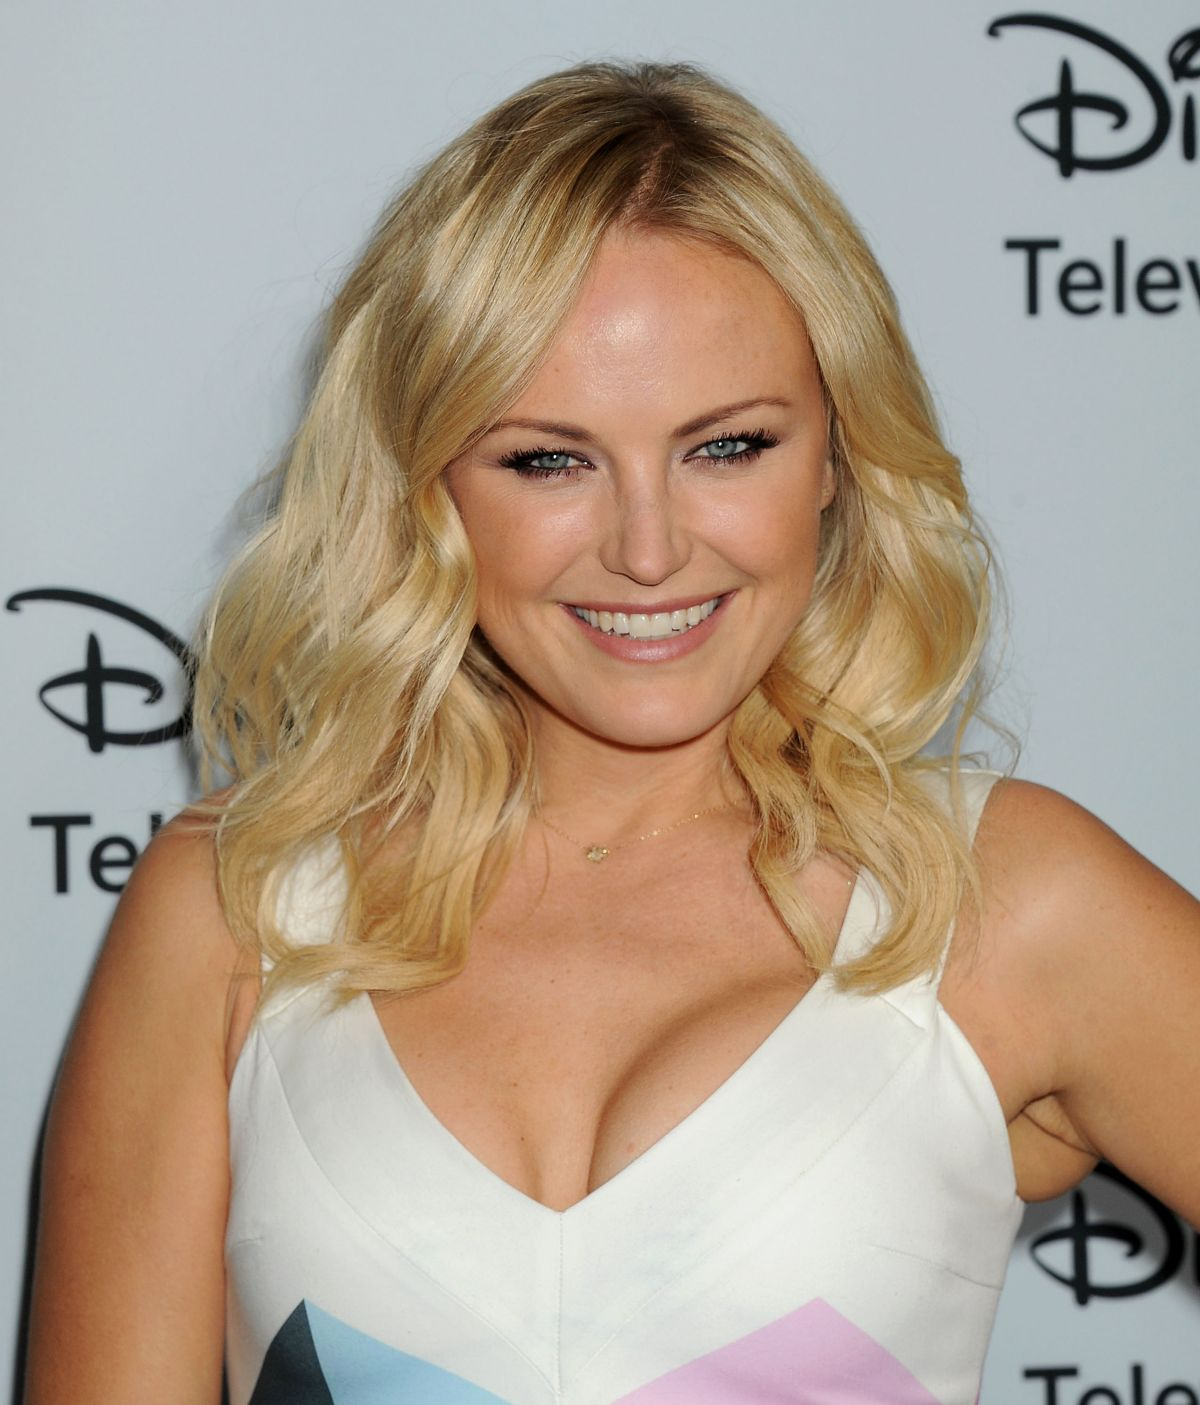 MALIN AKERMAN at Disney ABC Malin Akerman